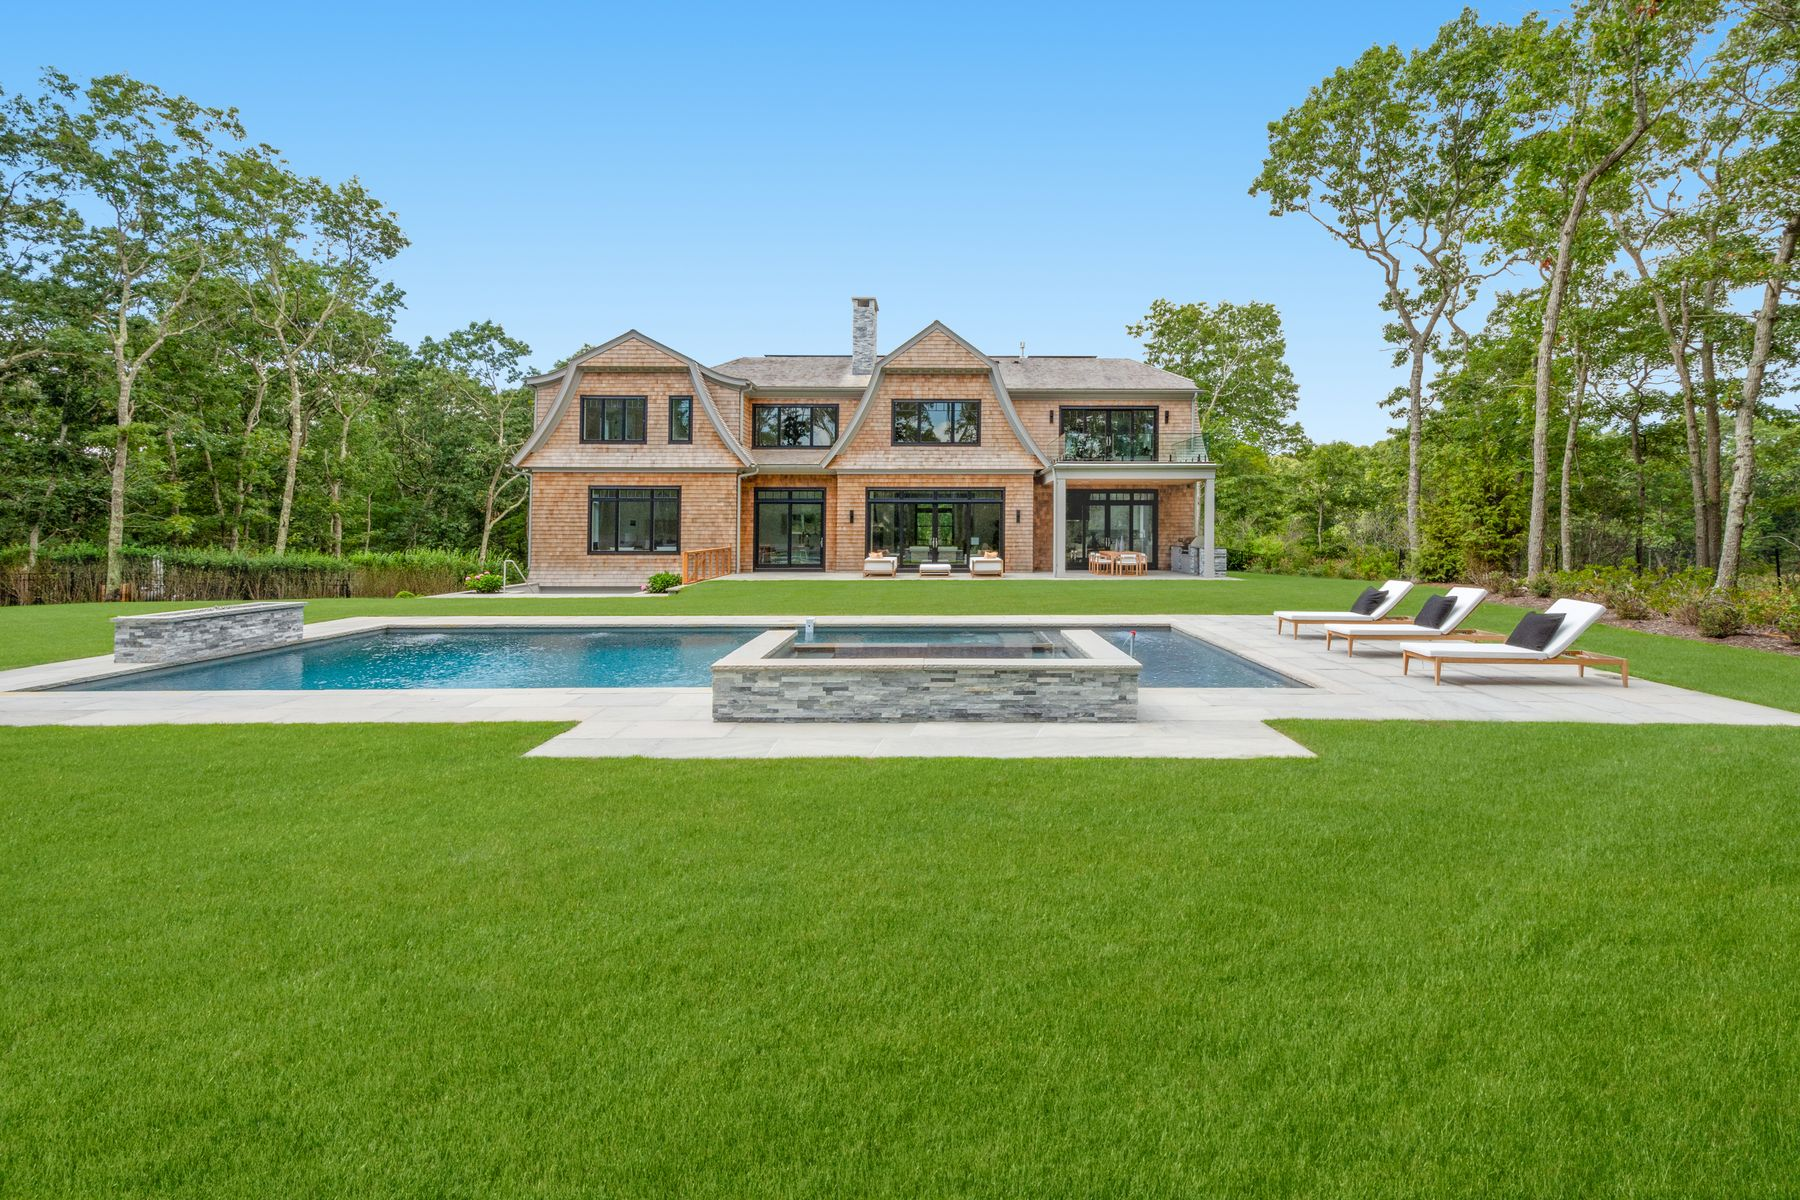 Single Family Homes for Sale at 5 Acre Estate Overlooking Golf Course 18 Fairway Court Sag Harbor, New York 11963 United States